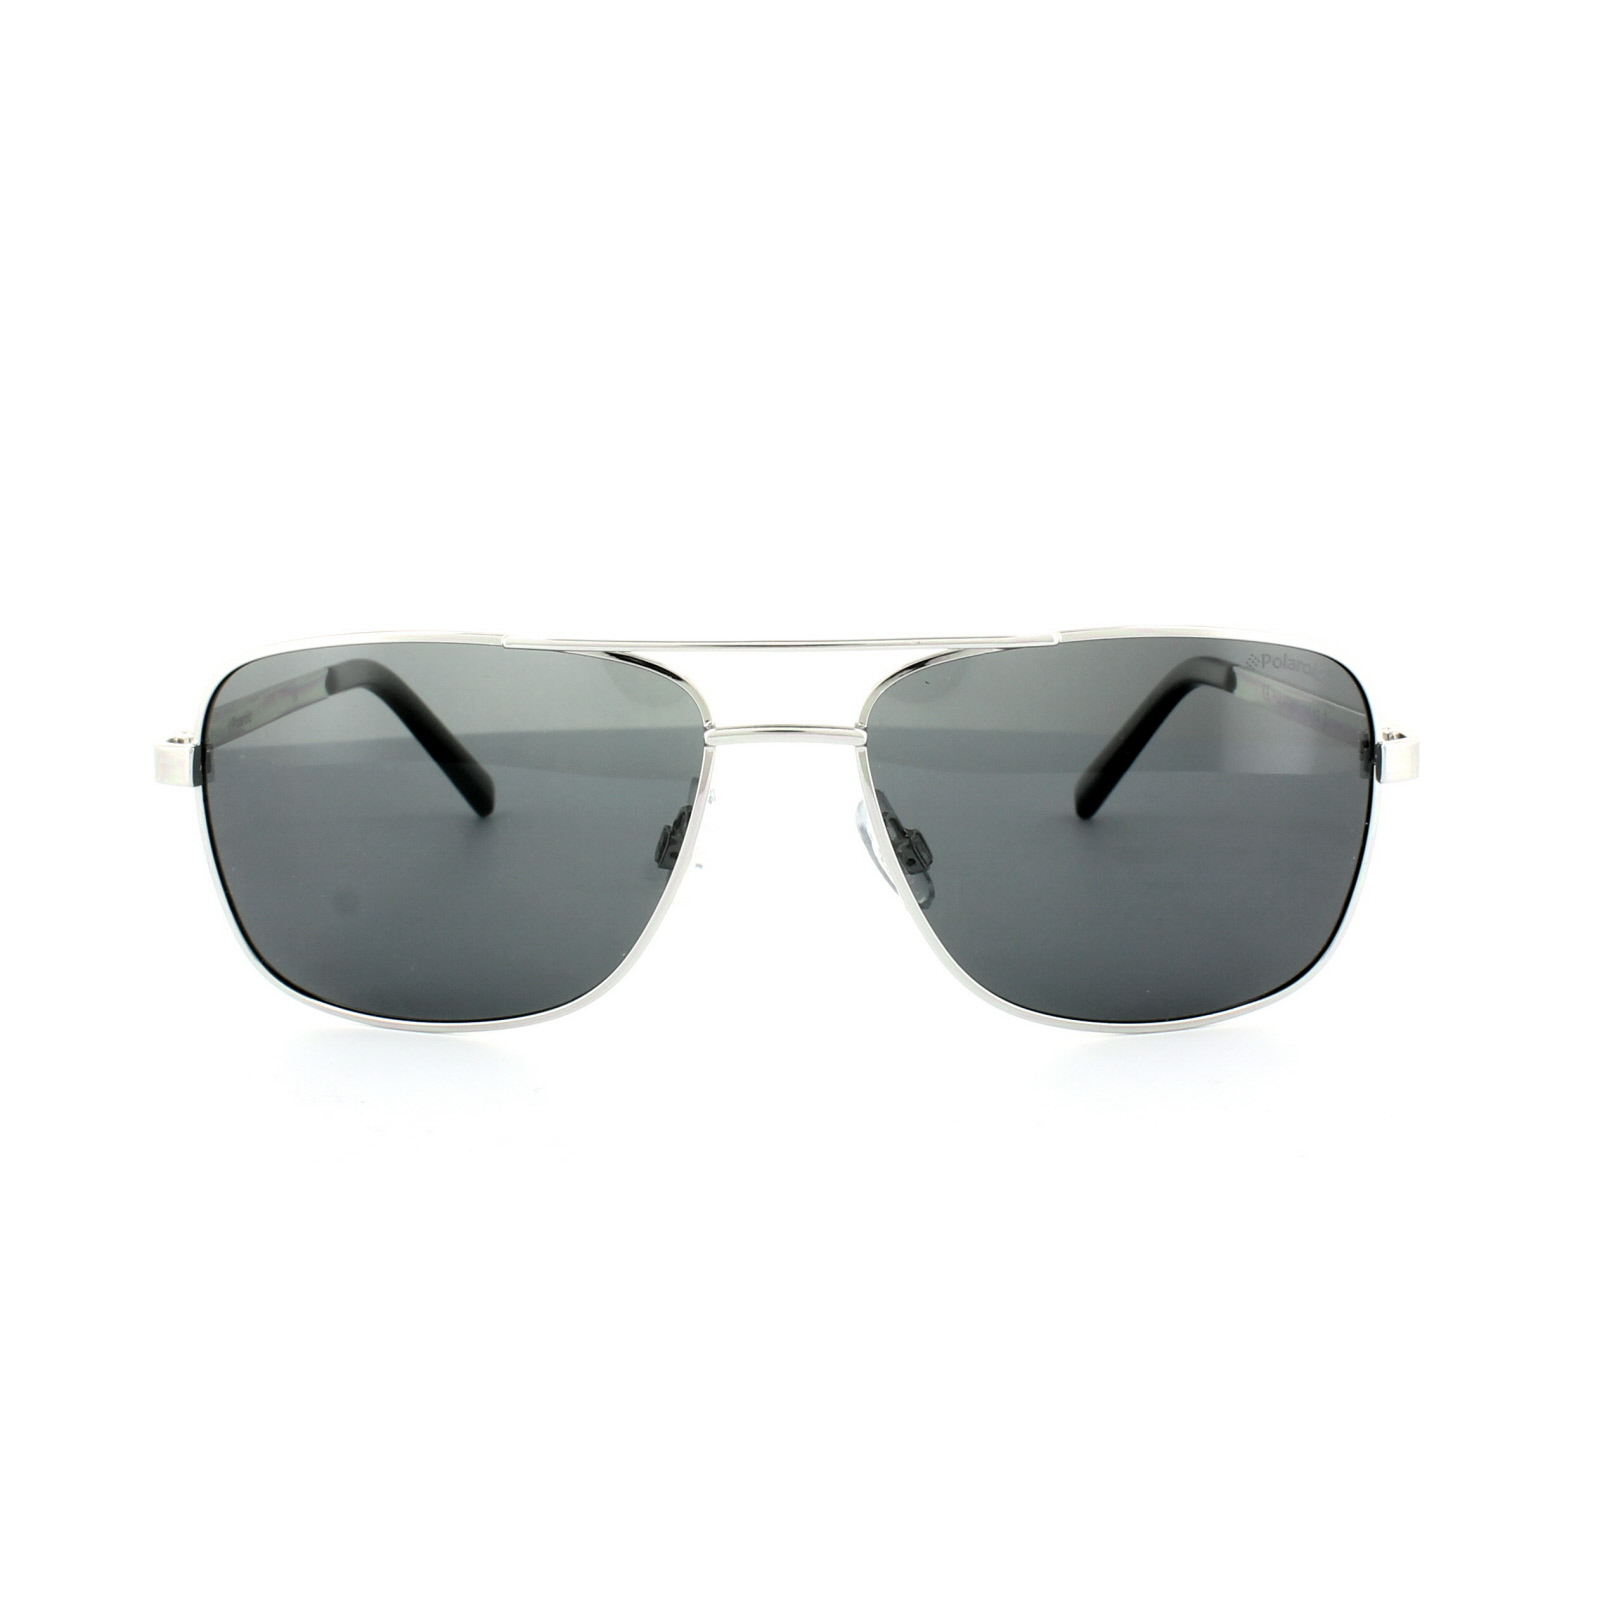 Sentinel Polaroid Sunglasses 2029 S 010 Y2 Palladium Silver Grey Grey  Polarized bb619103b3